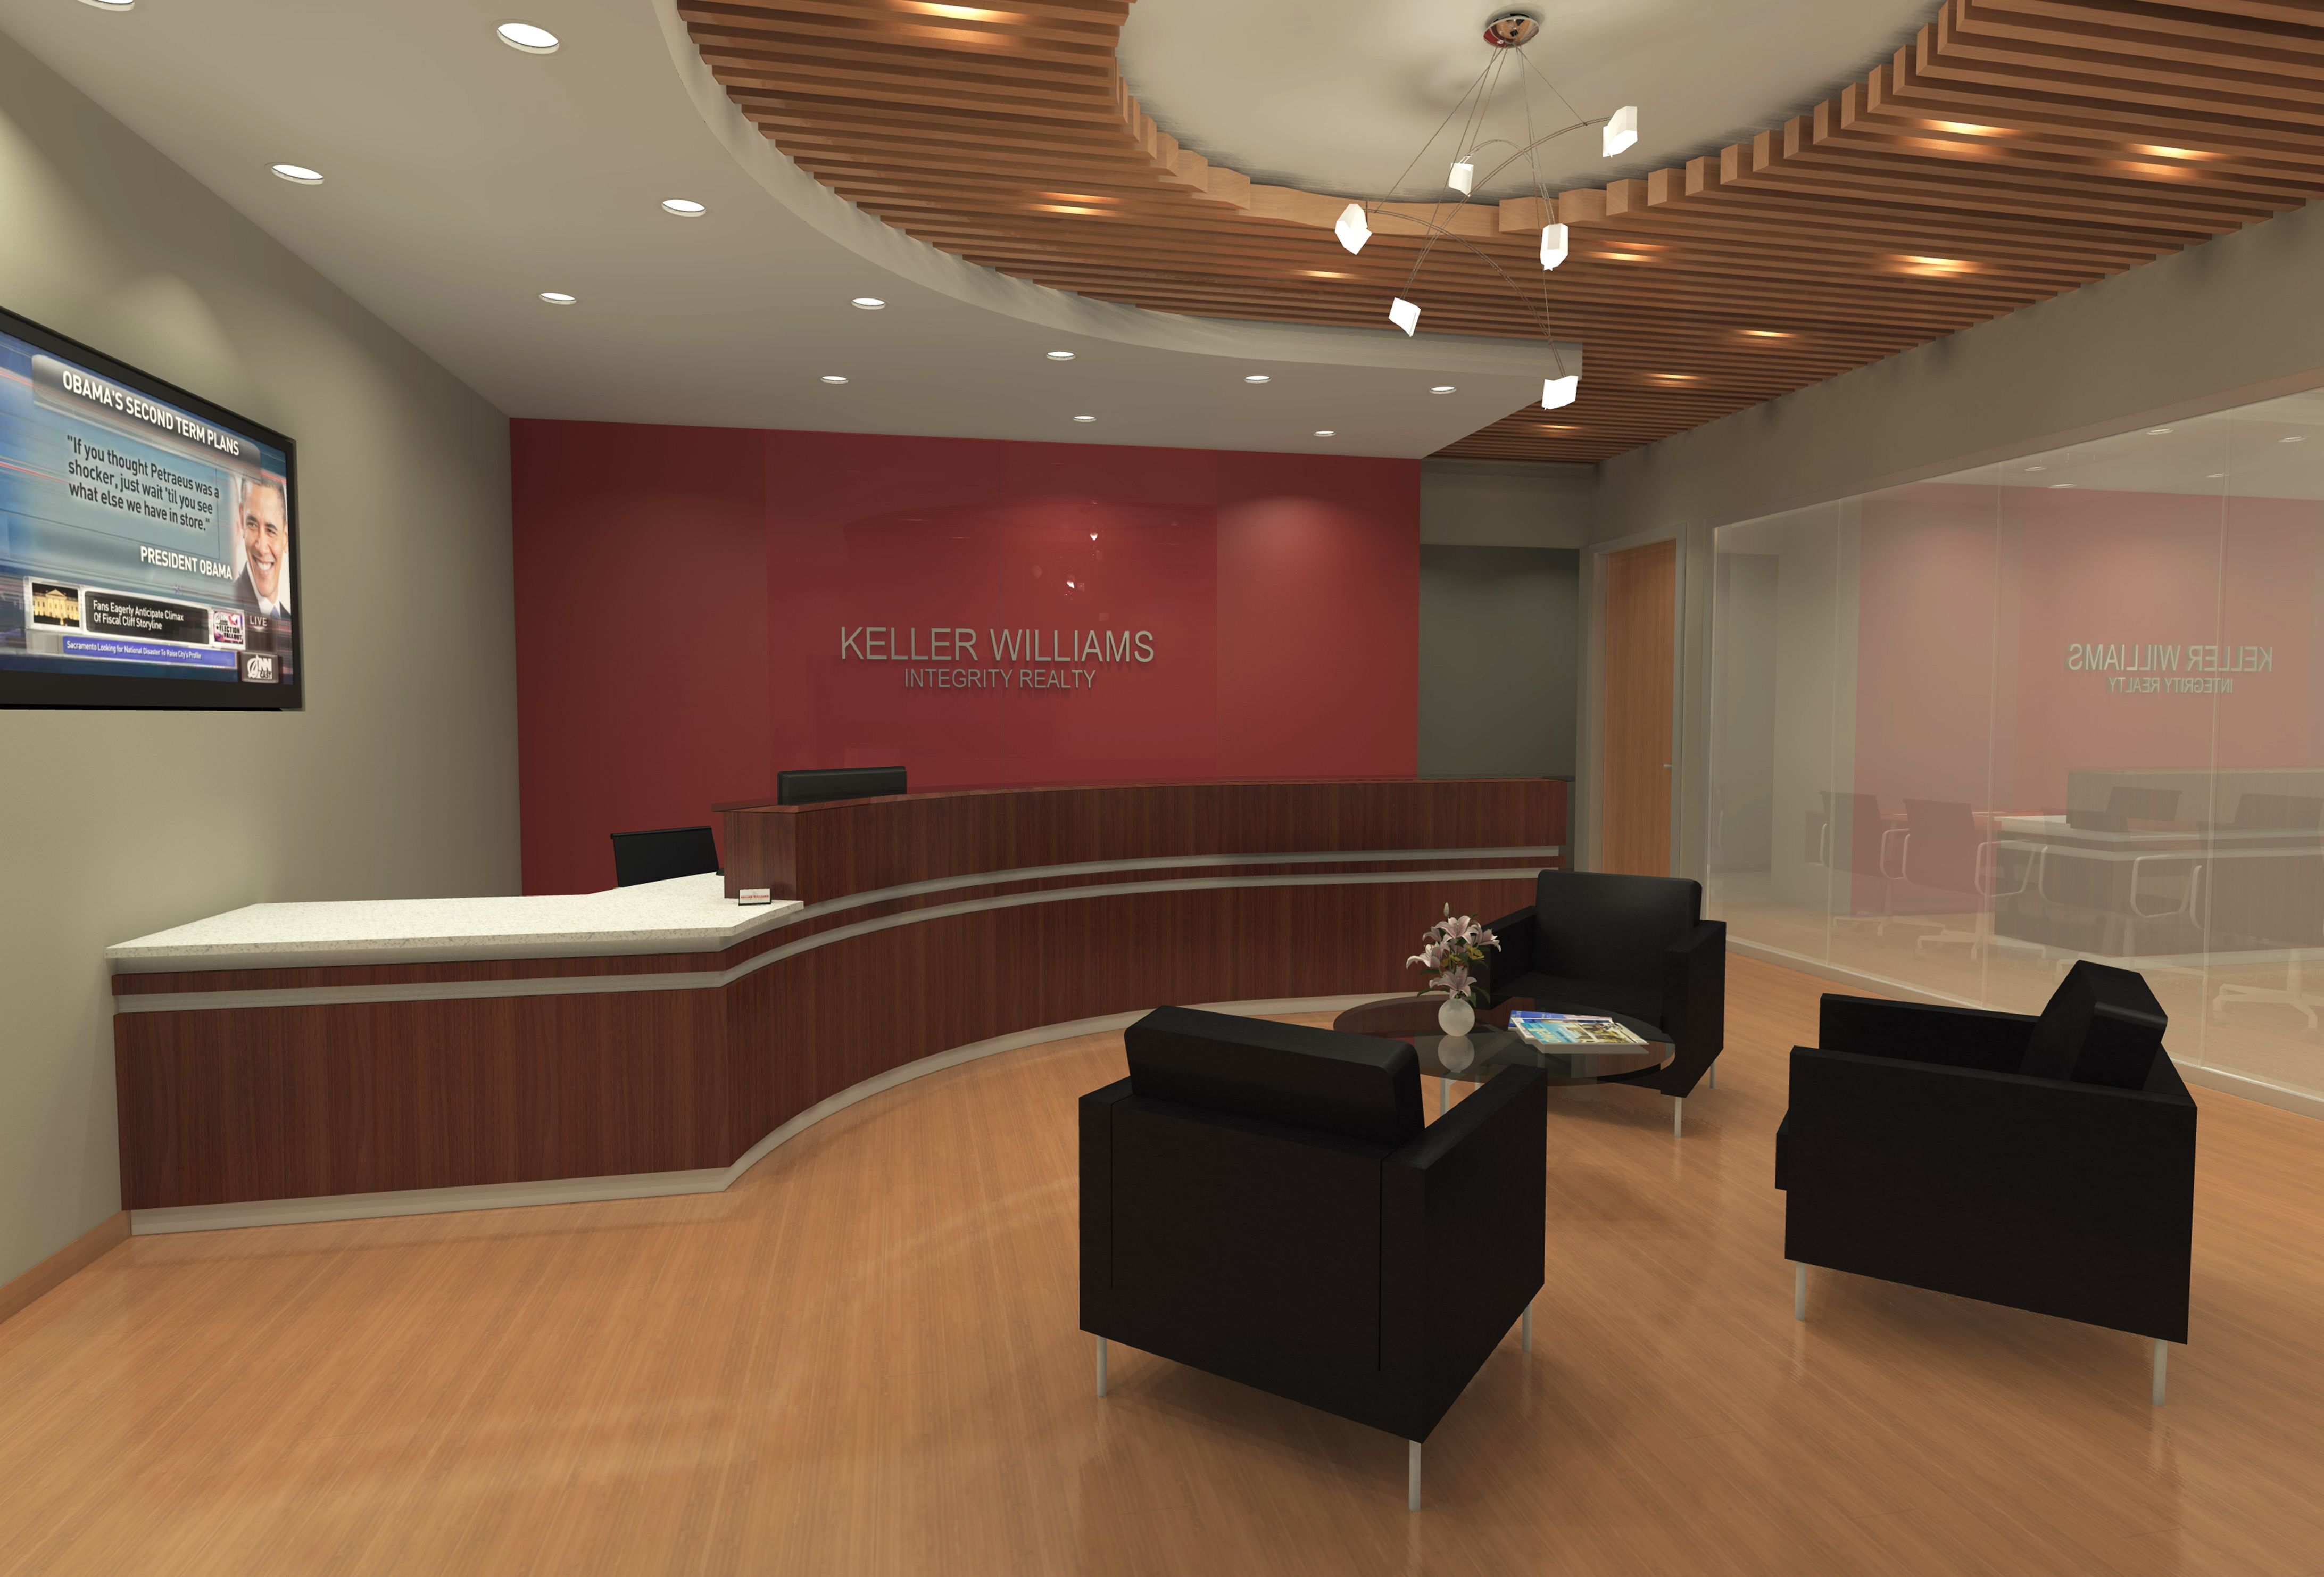 CMA was able to achieve a successful design for the client by creating a space that appealed to different types of real estate agents and their clients, including those from the trendy Uptown neighborhood to the more professional downtown areas. The finish palette includes modern materials, warm wood tones and a red accent color, all which compliment Keller Williams' overall brand.